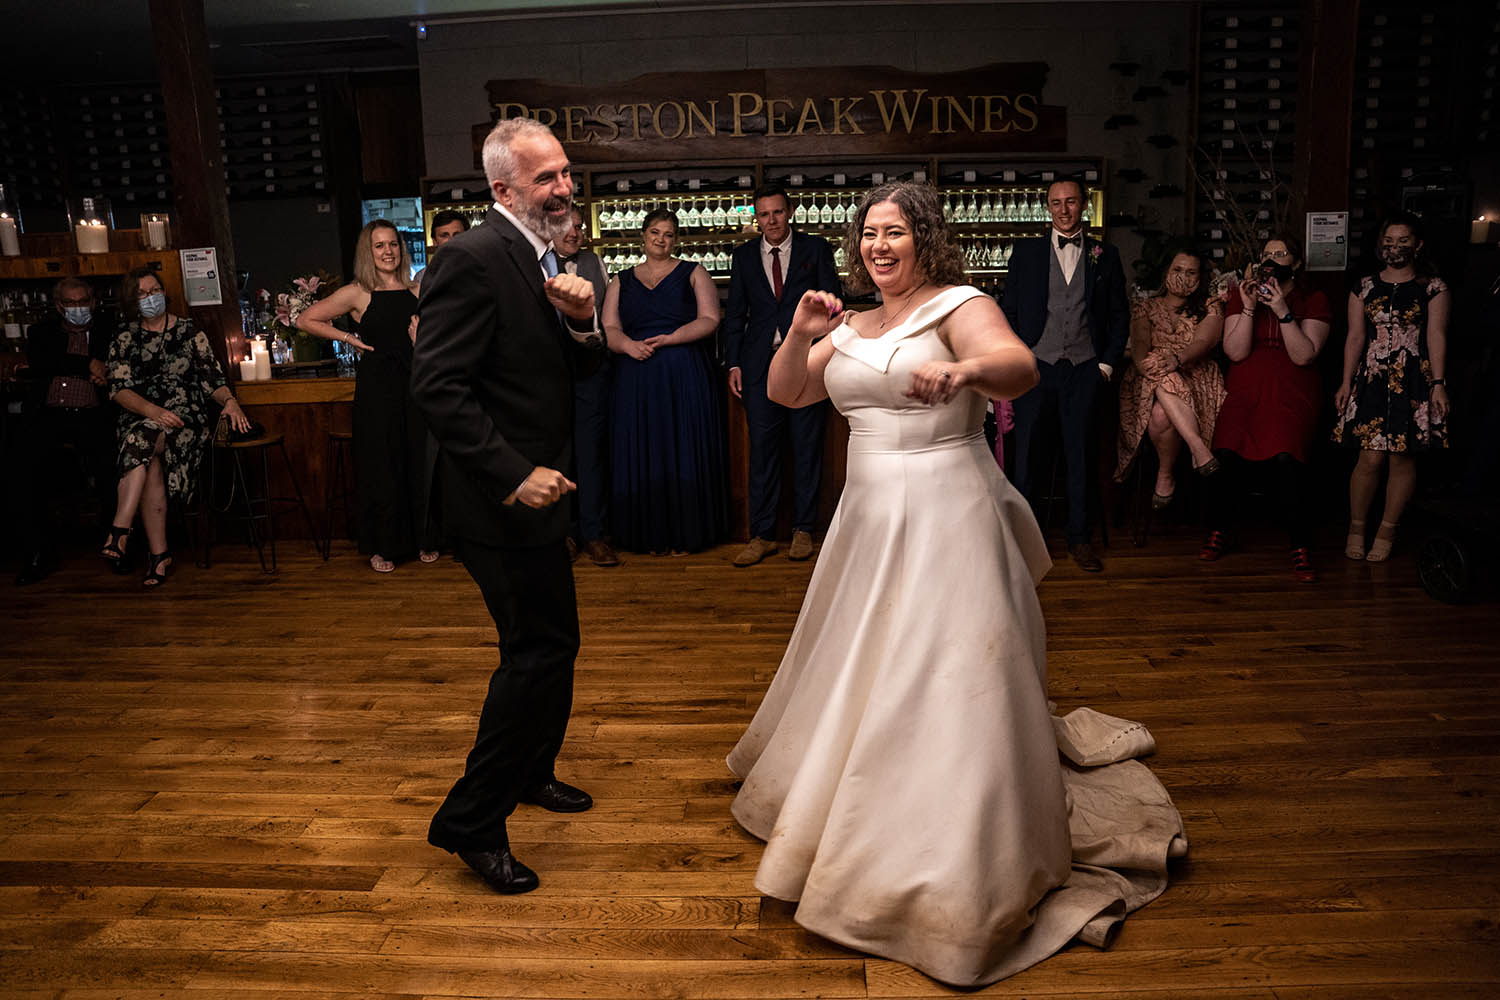 Wedding Photography - Daddy daughter dance